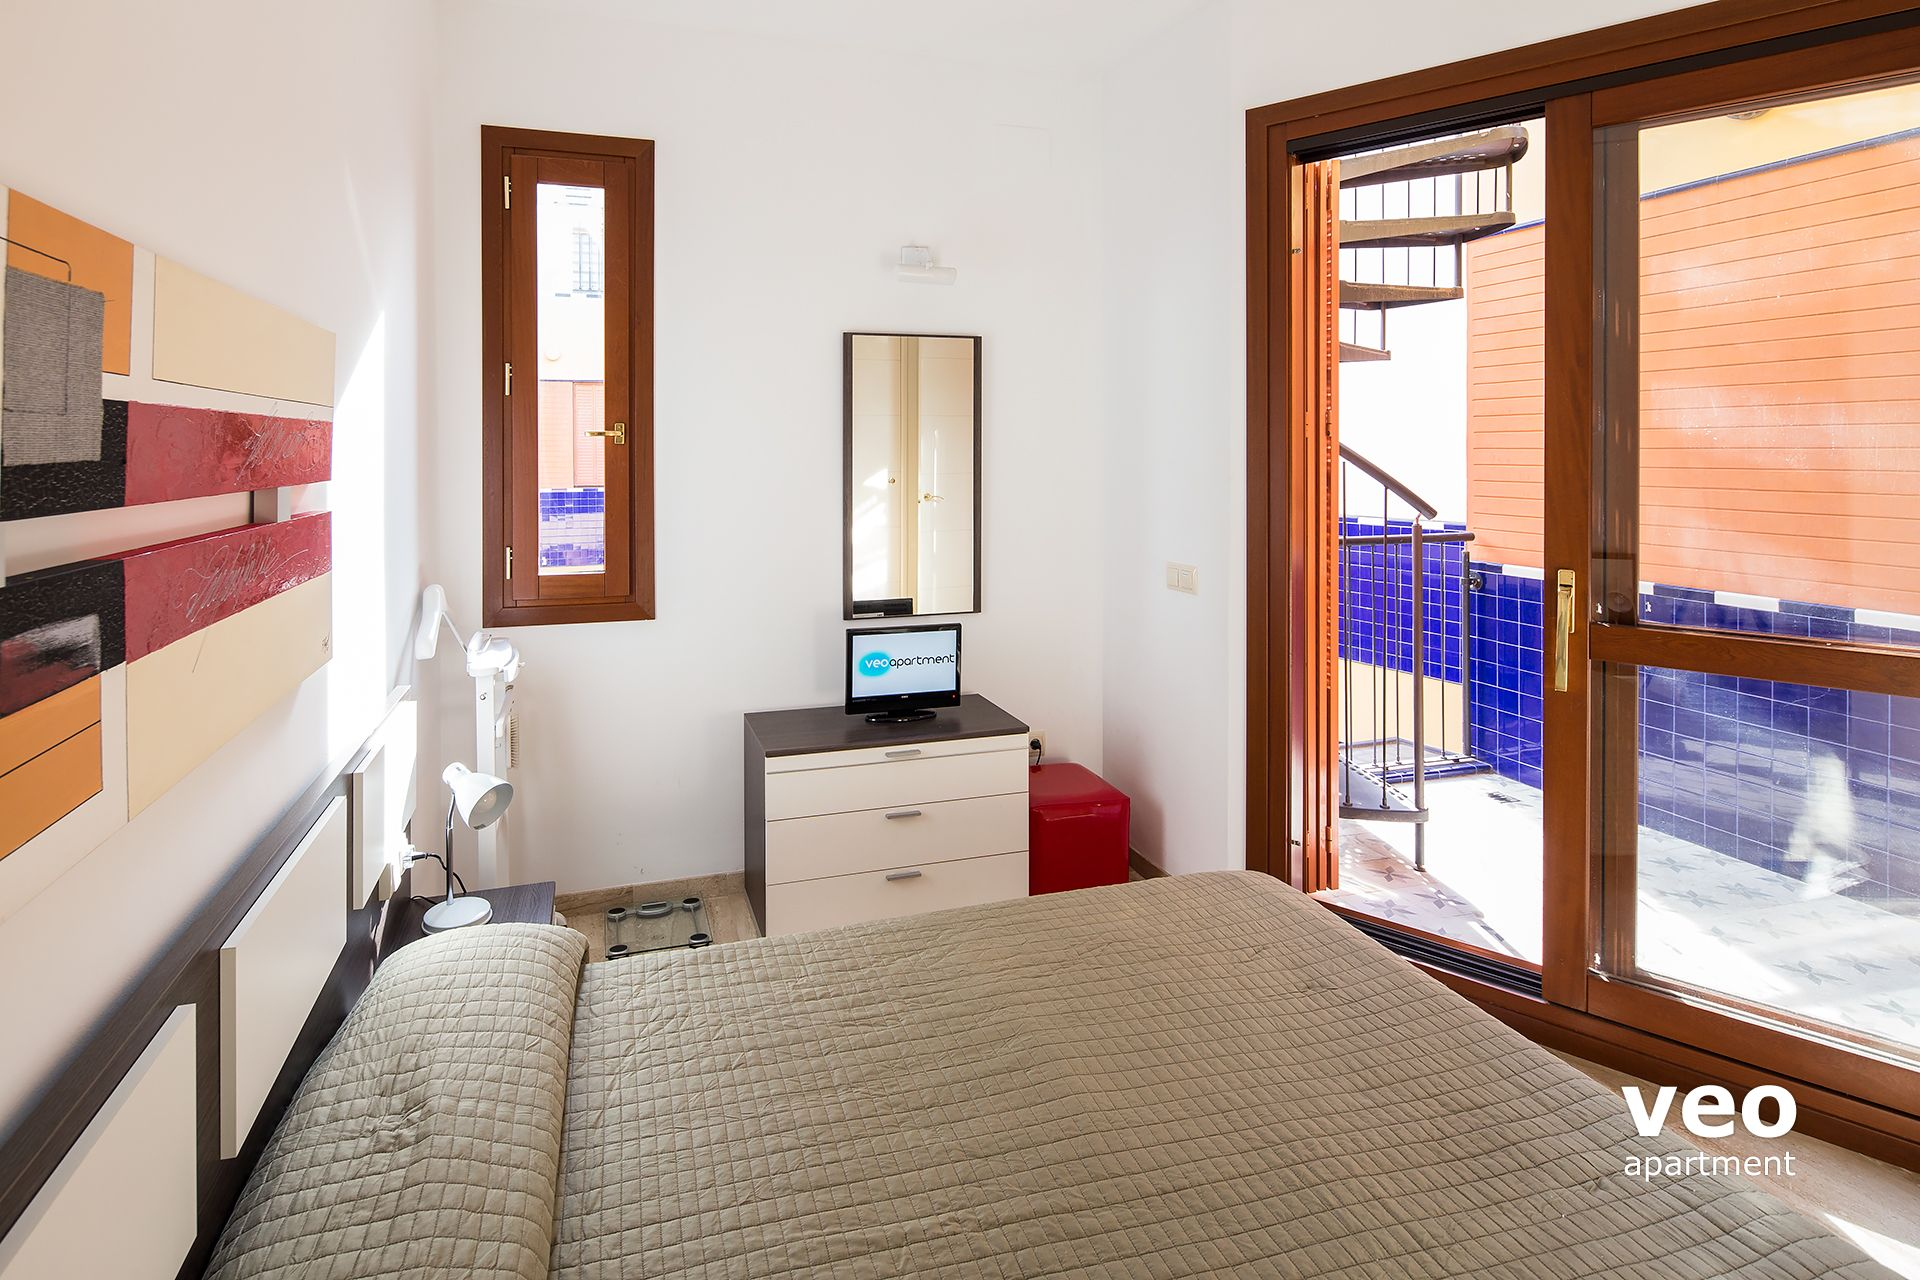 Seville Apartment   Bedroom With Large Sliding Doors To A Lower Terrace.